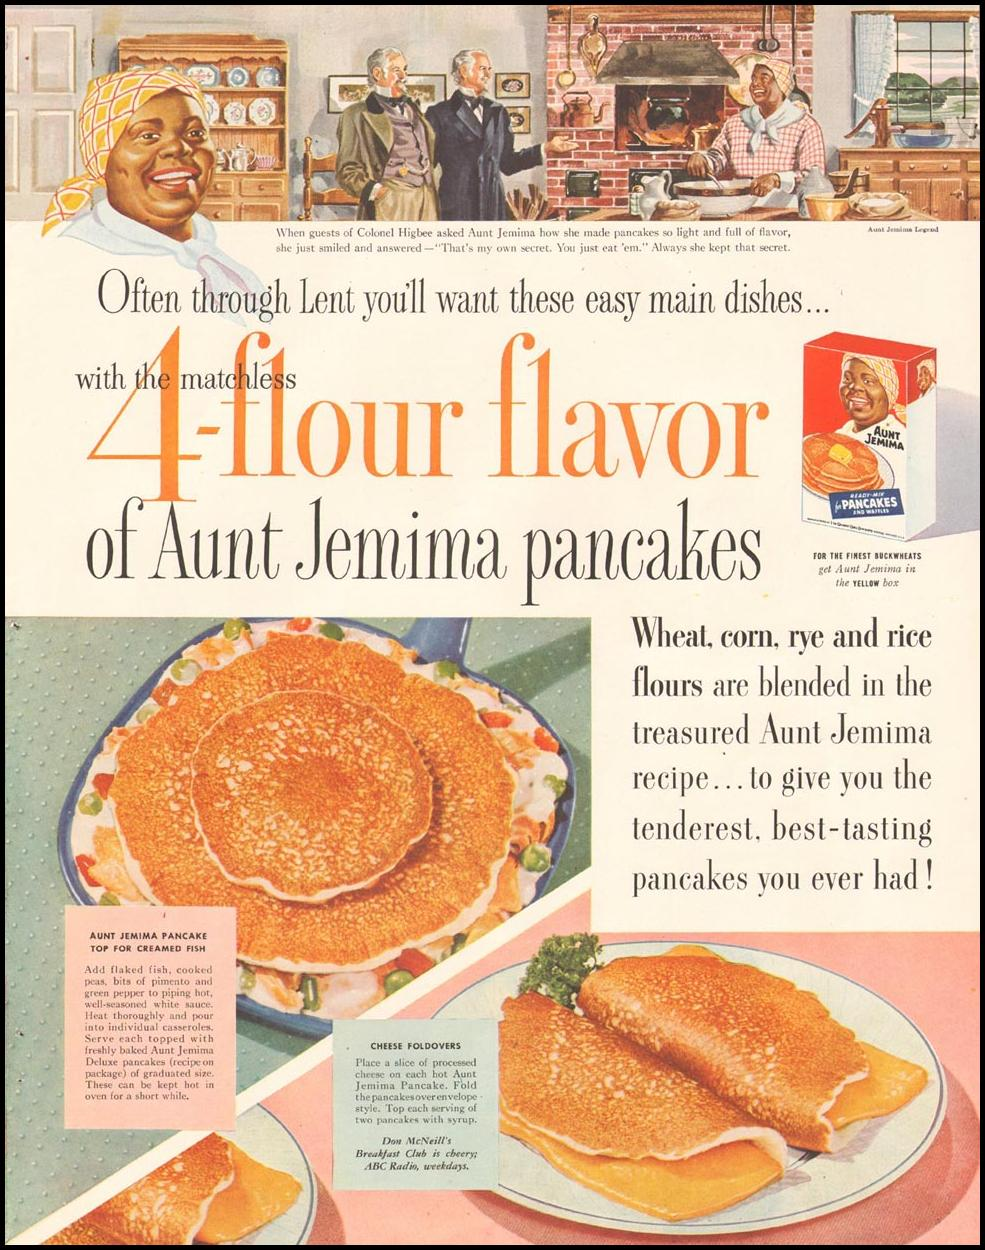 AUNT JEMIMA PANCAKES